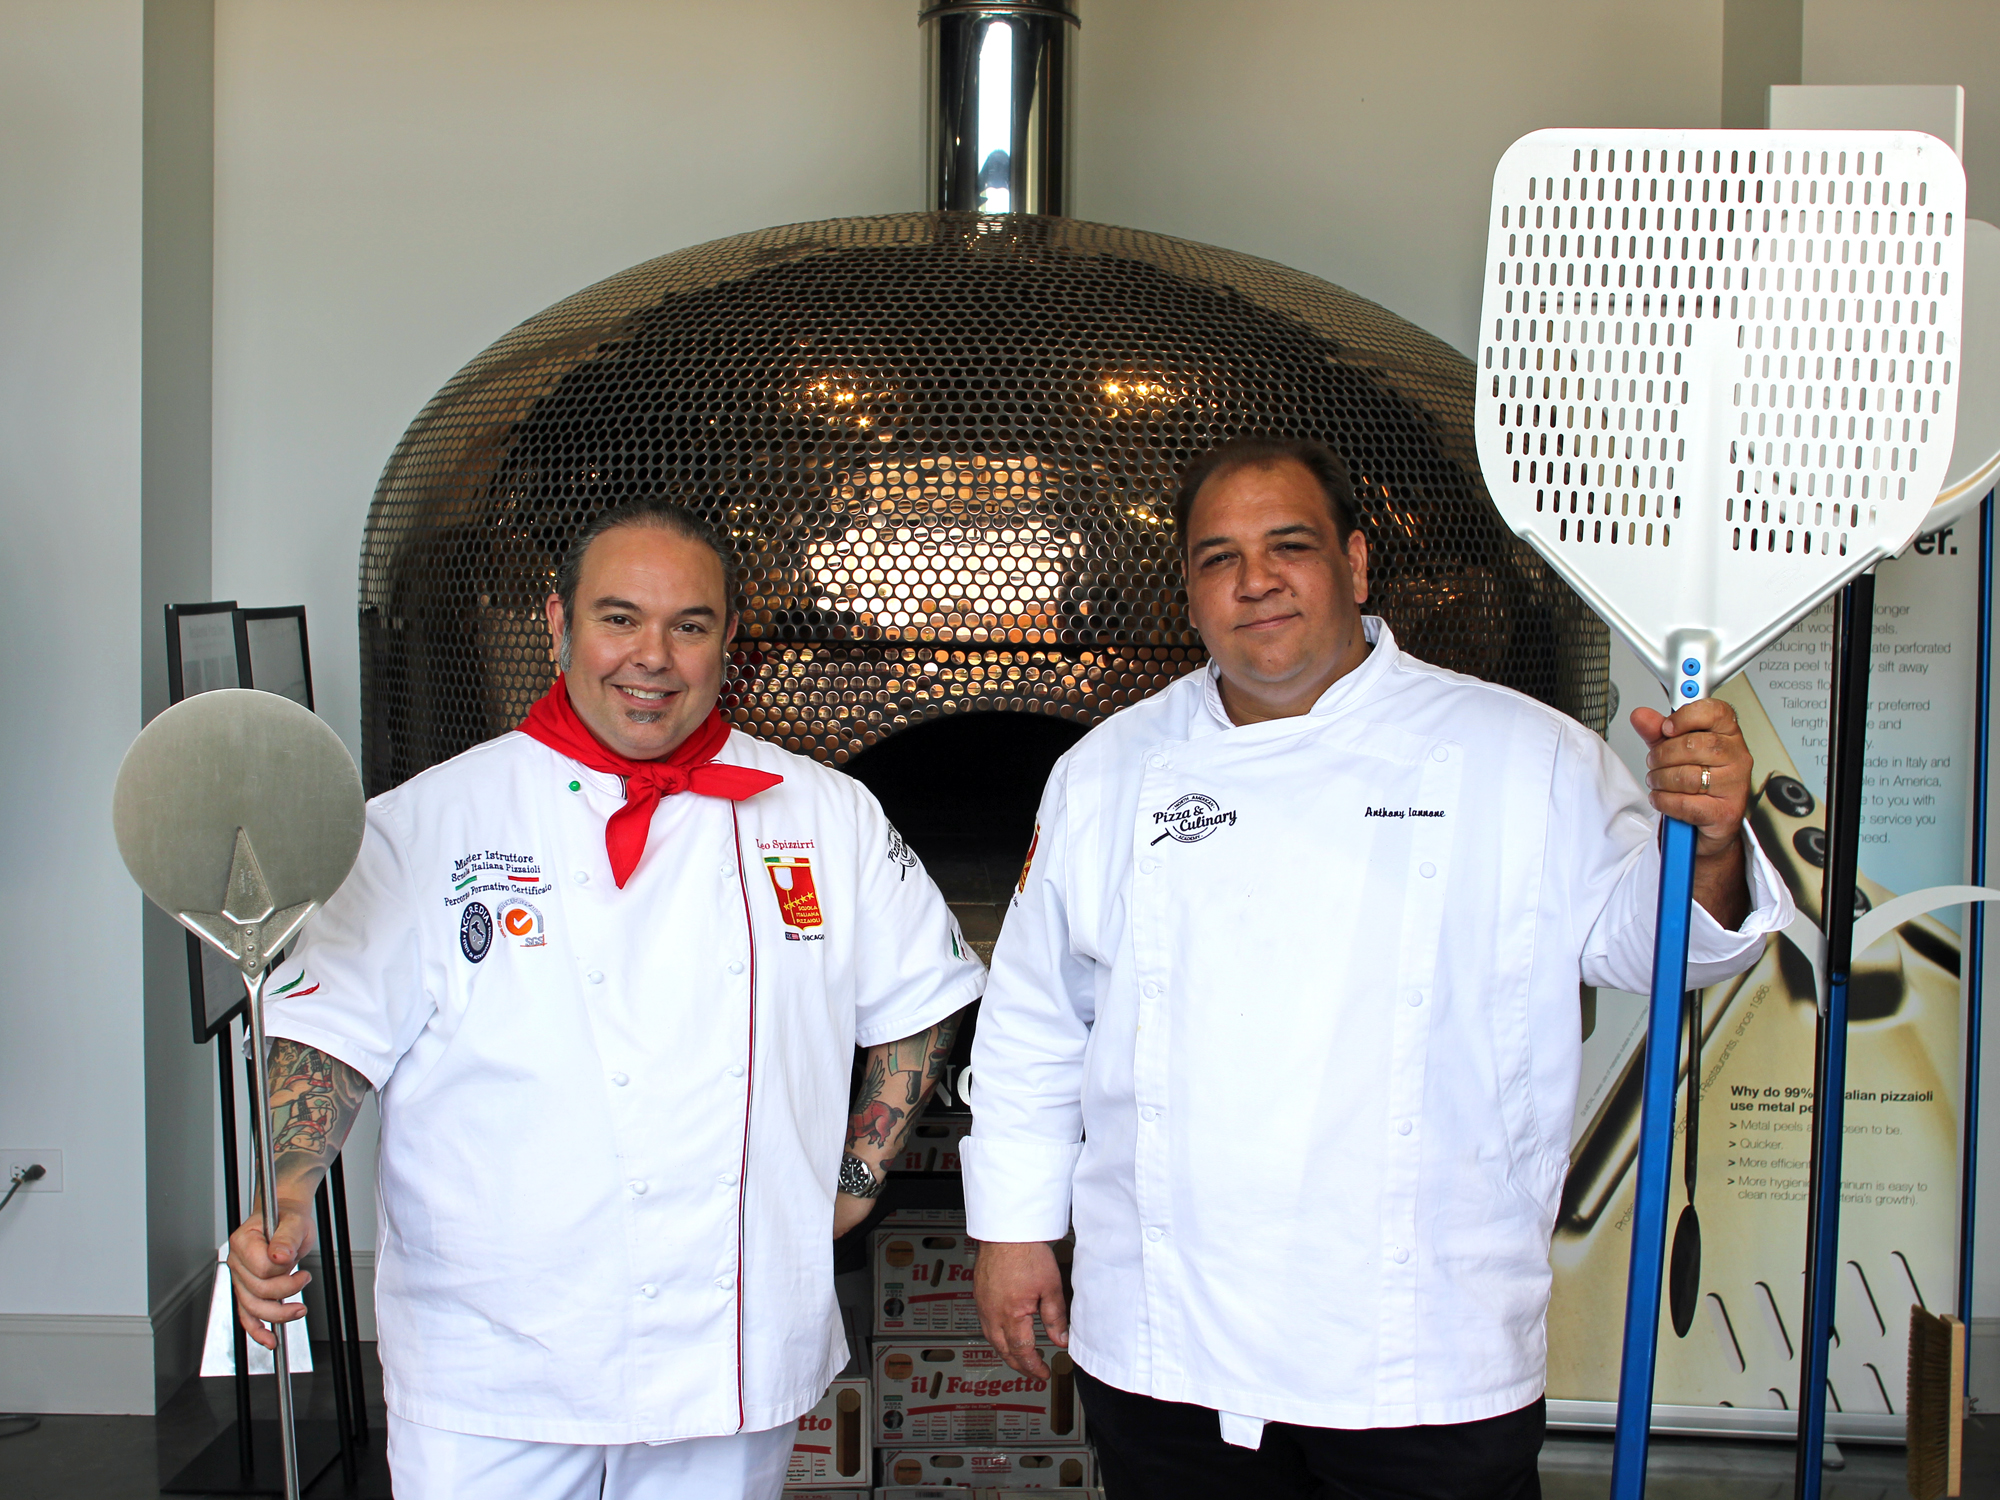 MEET YOUR INSTRUCTORS AT ITALIAN PIZZA SCHOOL